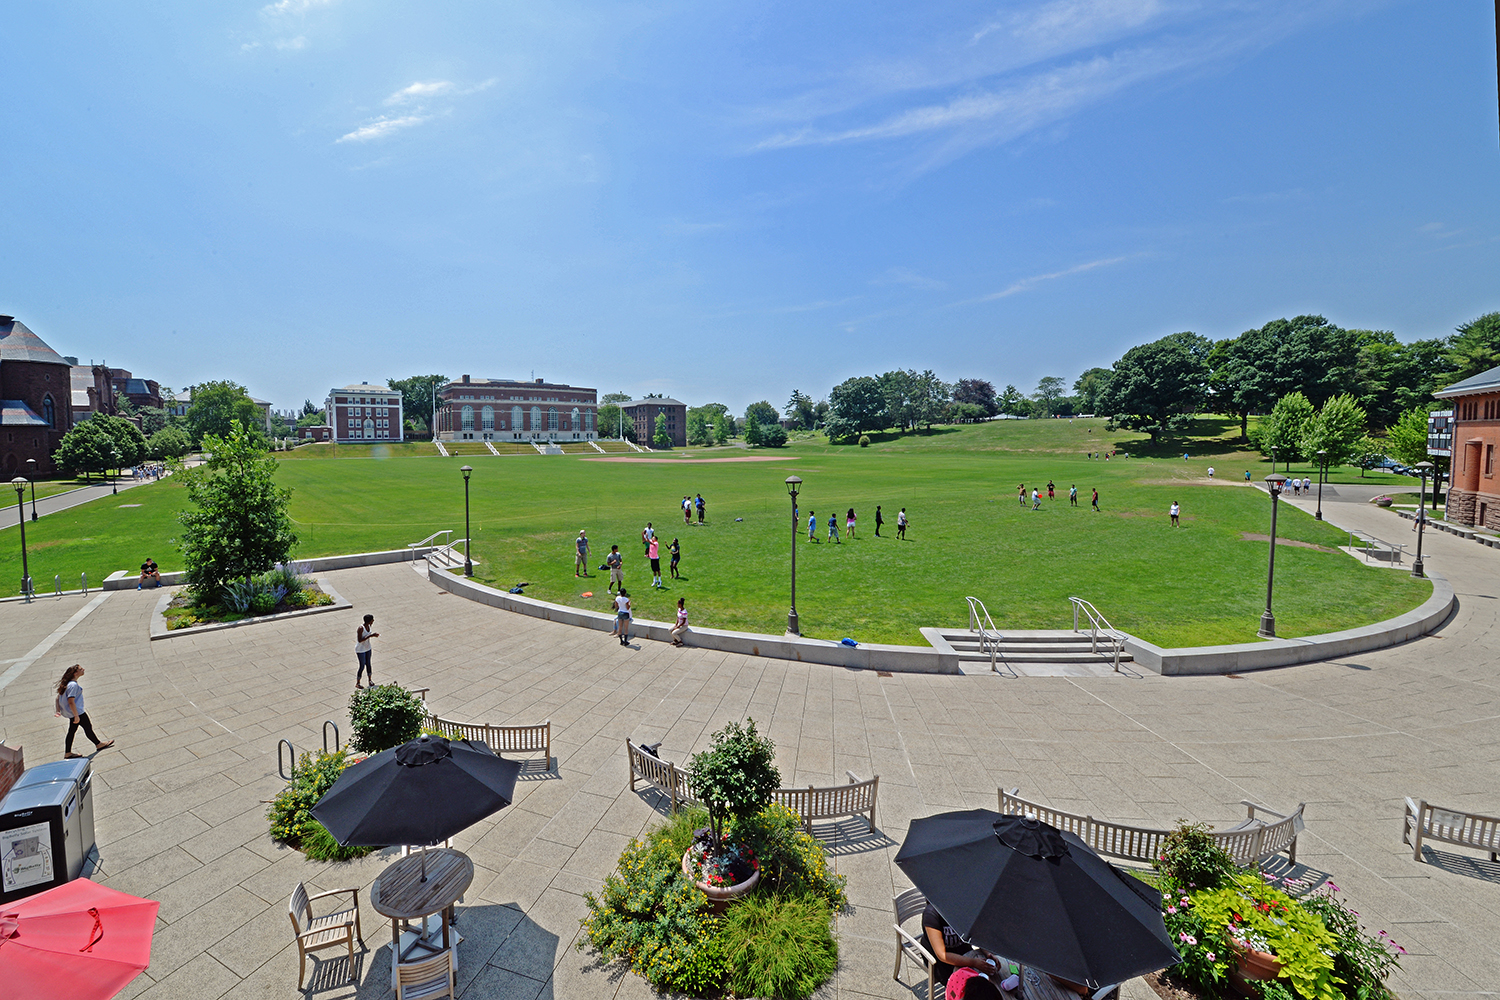 The six-week academic summer program offers intensive math, science, writing and language training; counseling, mentoring and academic support services; exposure to Wesleyan's faculty members who do research in mathematics and the sciences; and education or counseling services designed to improve the financial and economic literacy of students.